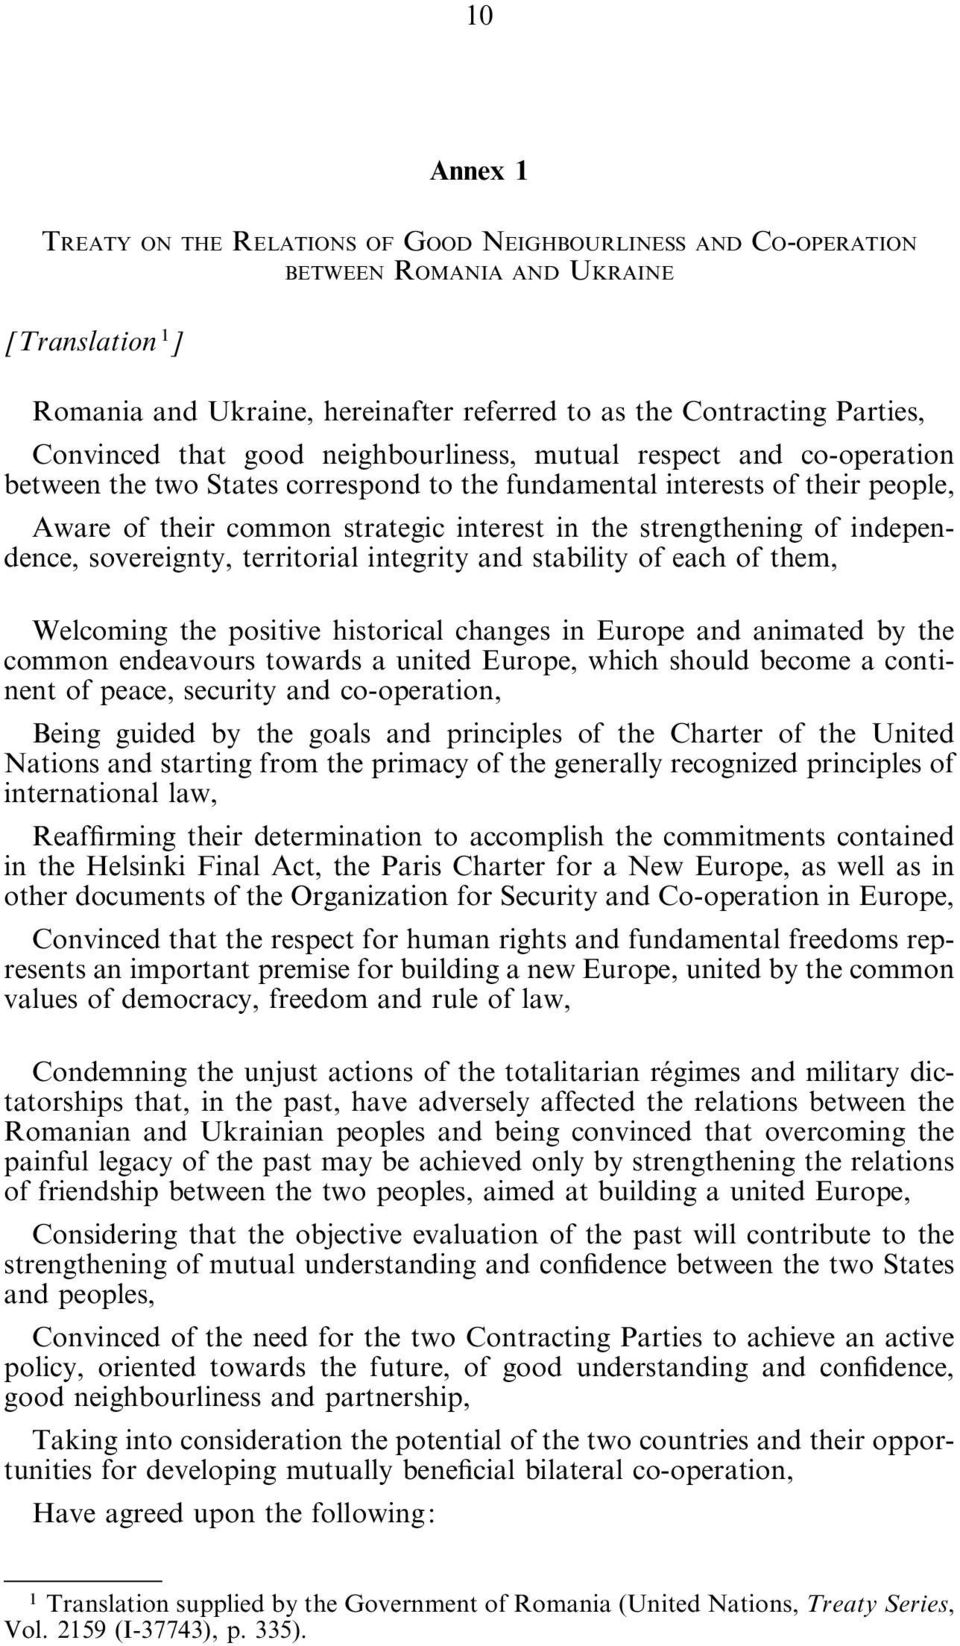 strengthening of independence, sovereignty, territorial integrity and stability of each of them, Welcoming the positive historical changes in Europe and animated by the common endeavours towards a